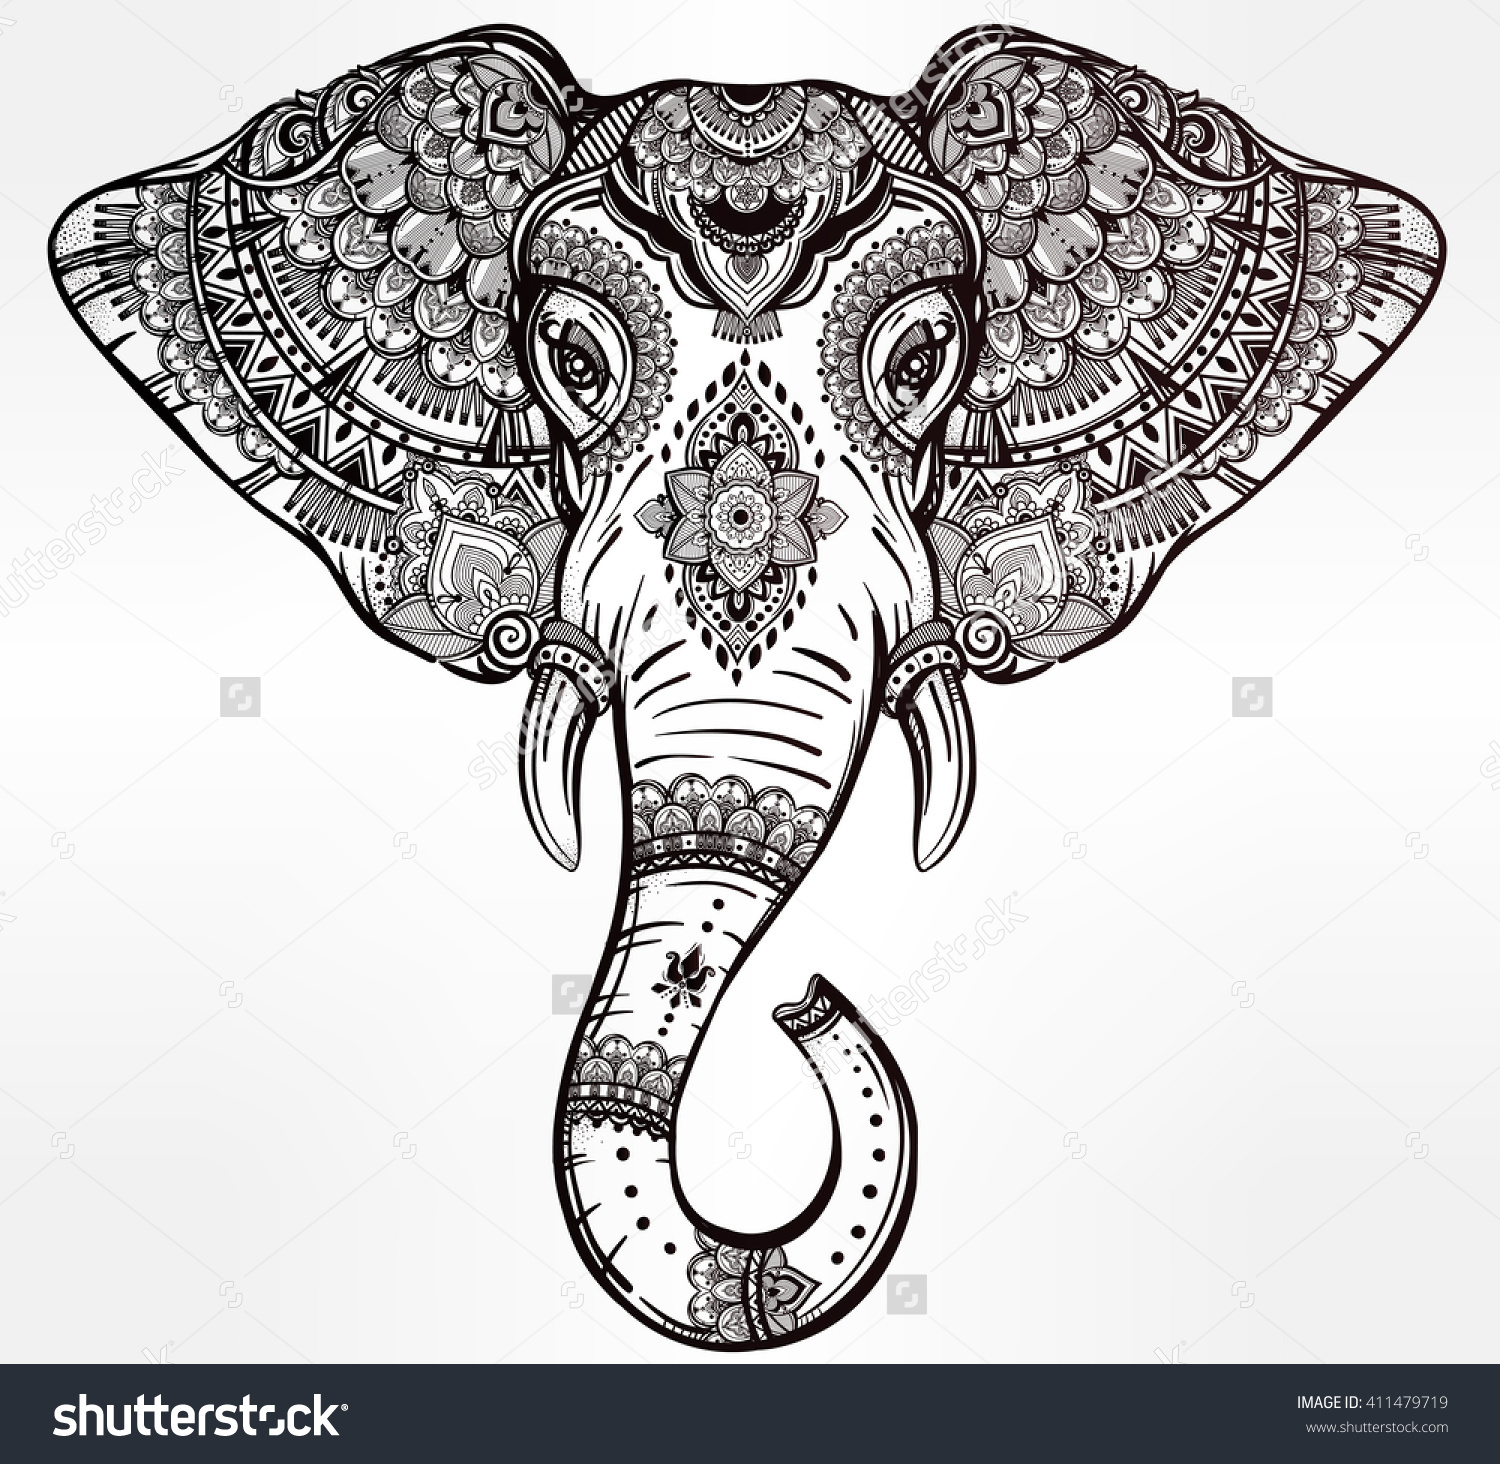 Vintage mandala vector elephant with tribal ornaments. Ideal.